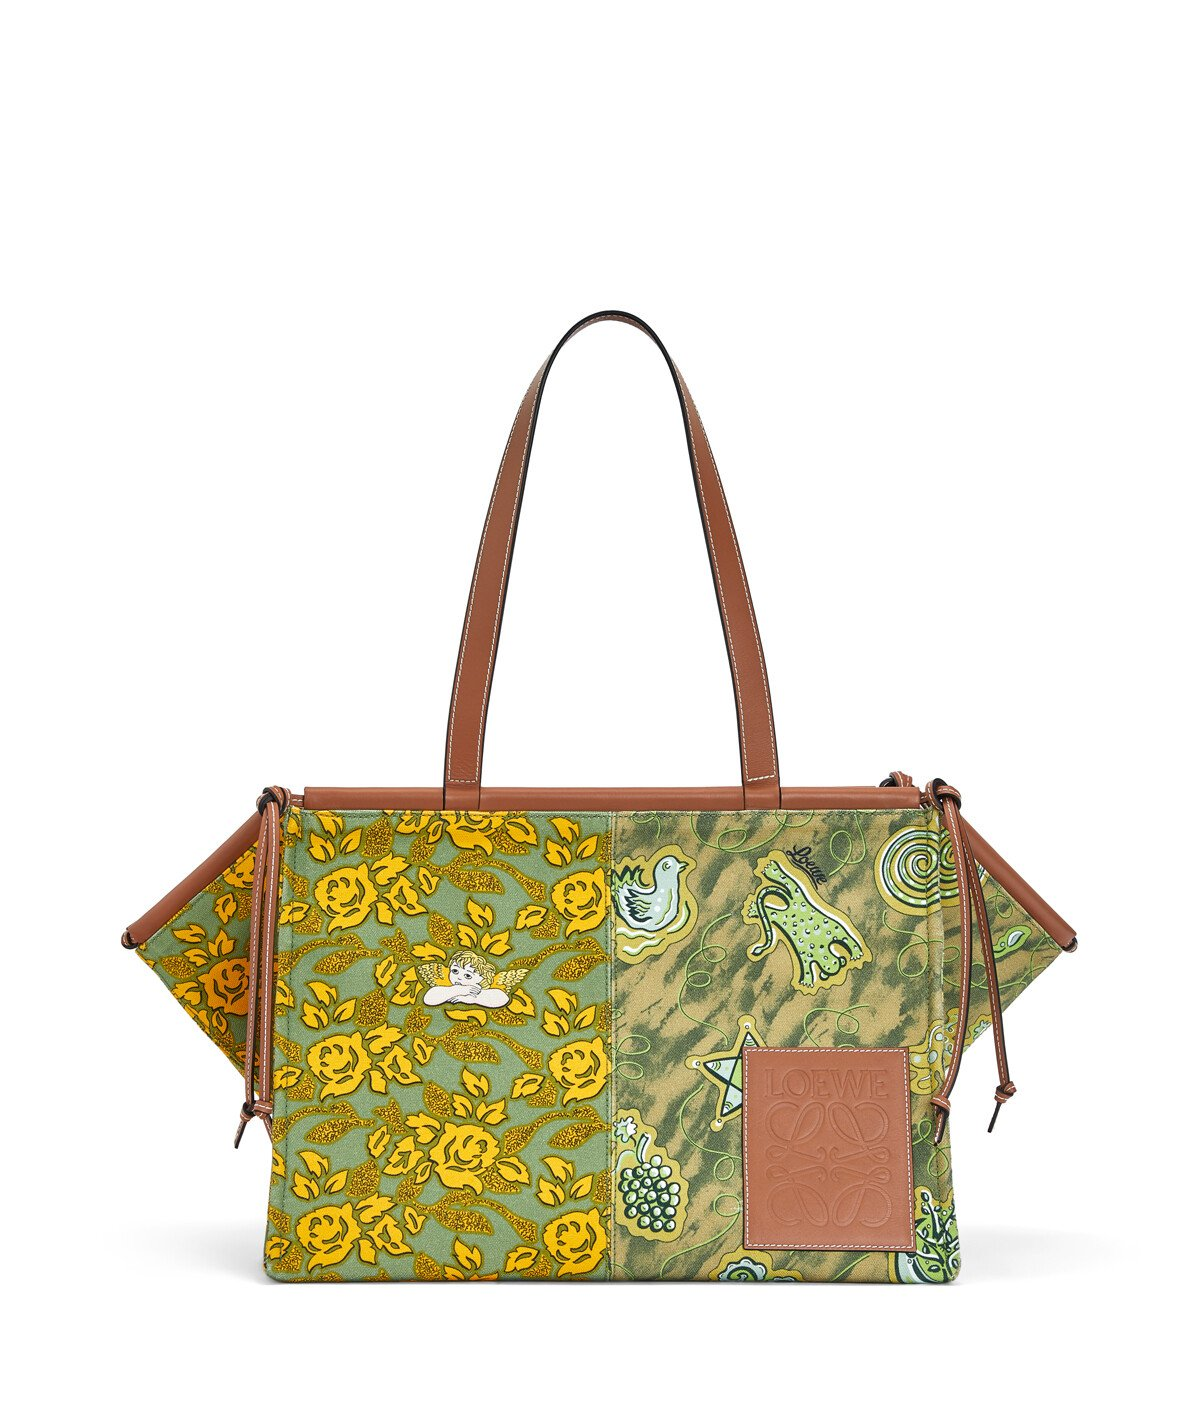 LOEWE Paula's Cushion Tote Prints Large 绿色/黄色 front